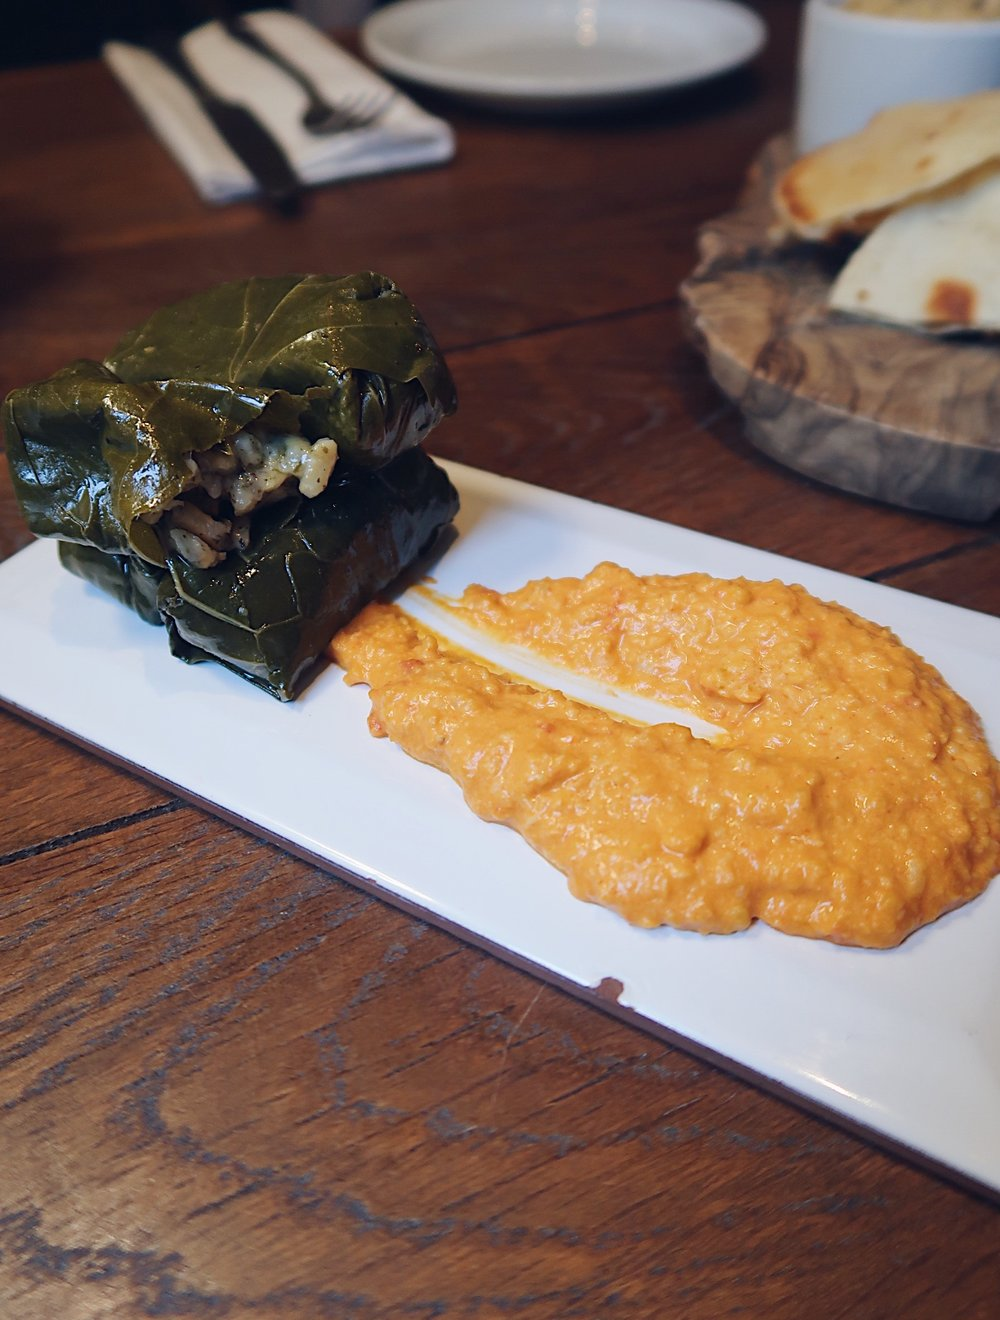 Stuffed vine leaves with hummus